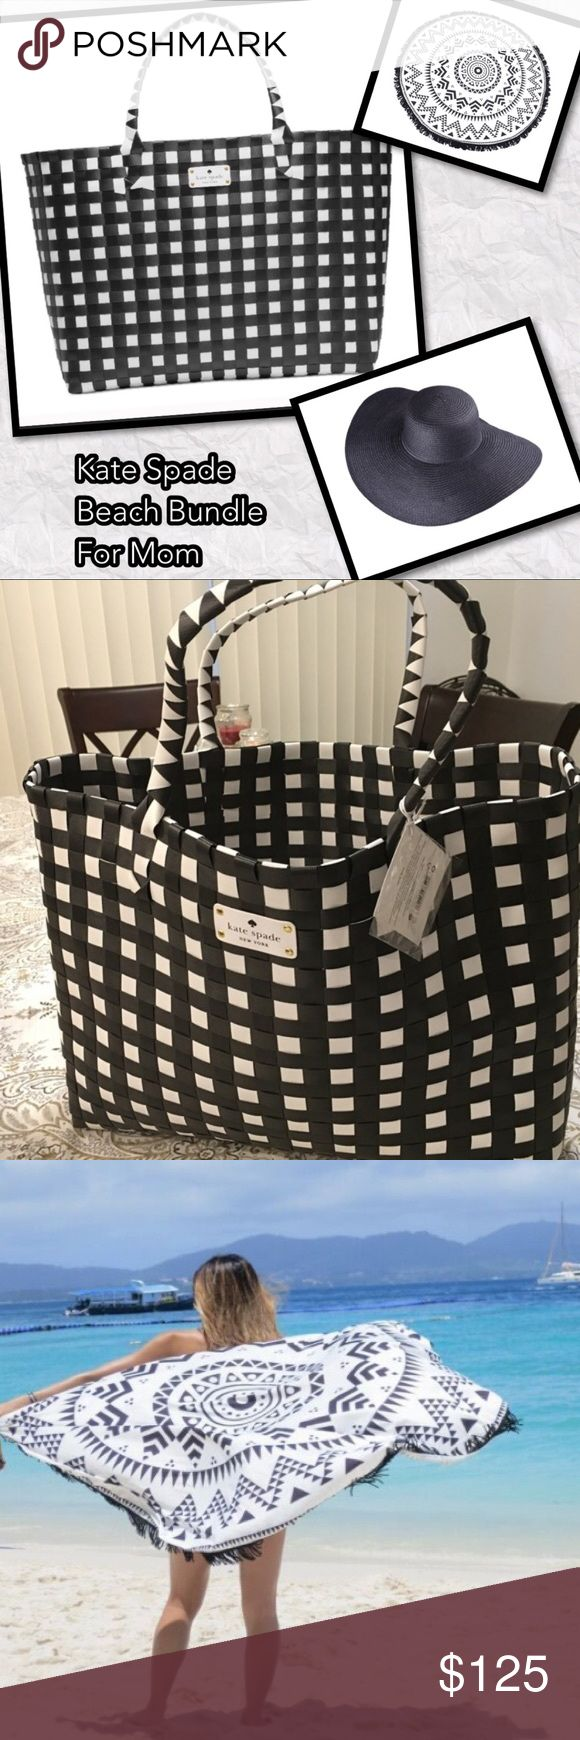 """MOM Kate Spade Beach Bundle Black and white 14x16x6 Kate Spade beach nylon straw beach tote. Brand New with Tags never used. Black beach floppy hat, and """"60 inch round beach throw or wrap. Comes in gift bag with a few extras for mom and a handmade card for you for her! kate spade Bags"""